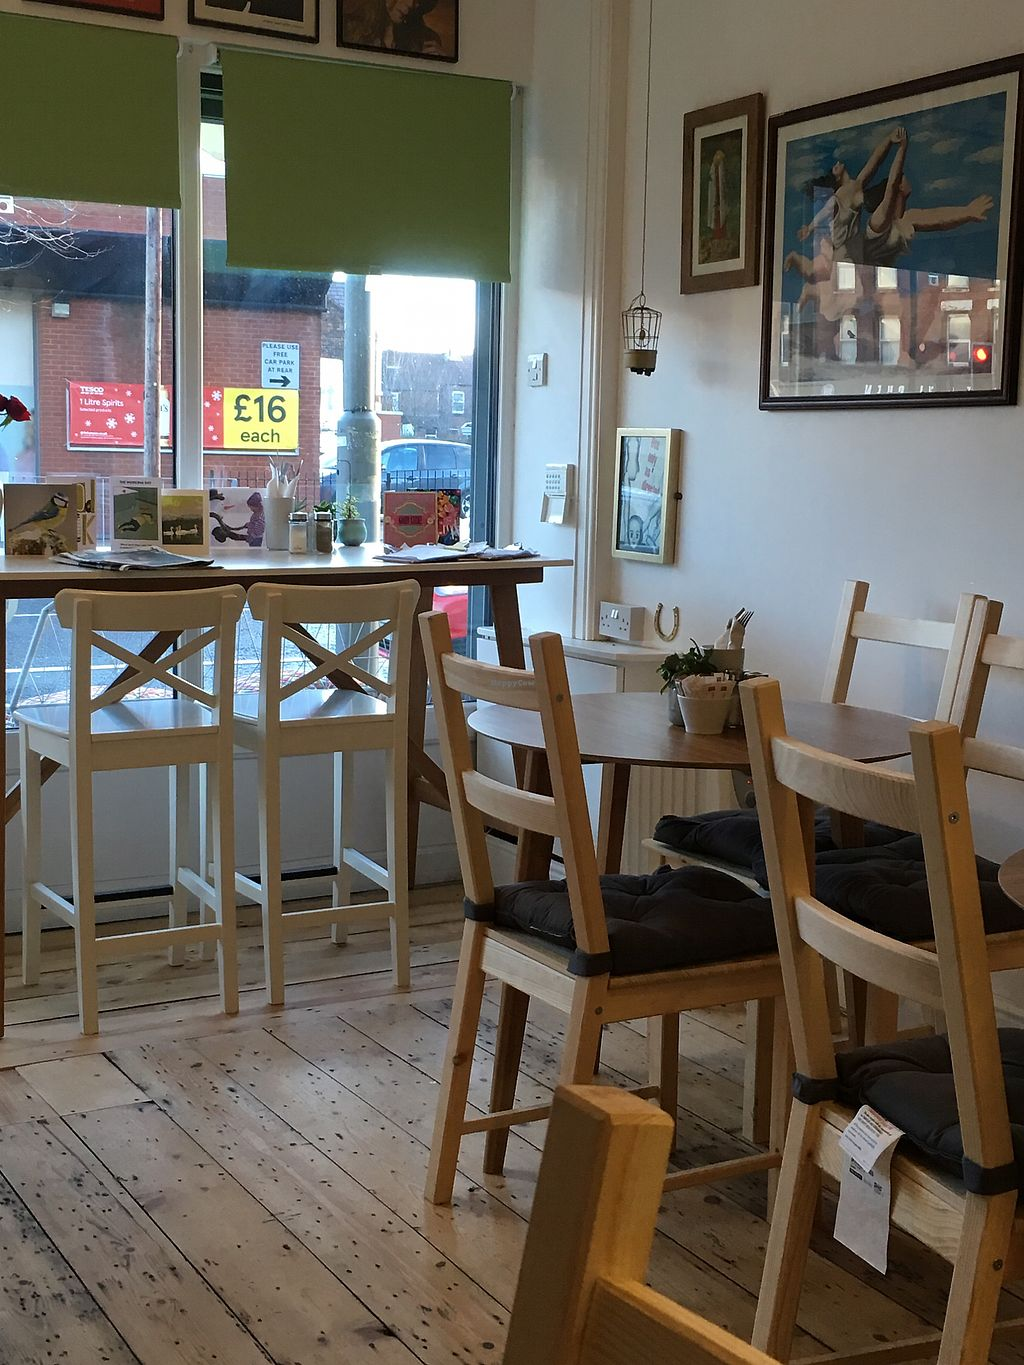 """Photo of the third cafe  by <a href=""""/members/profile/Frijoles"""">Frijoles</a> <br/>The Third Cafe <br/> December 15, 2017  - <a href='/contact/abuse/image/107299/335852'>Report</a>"""